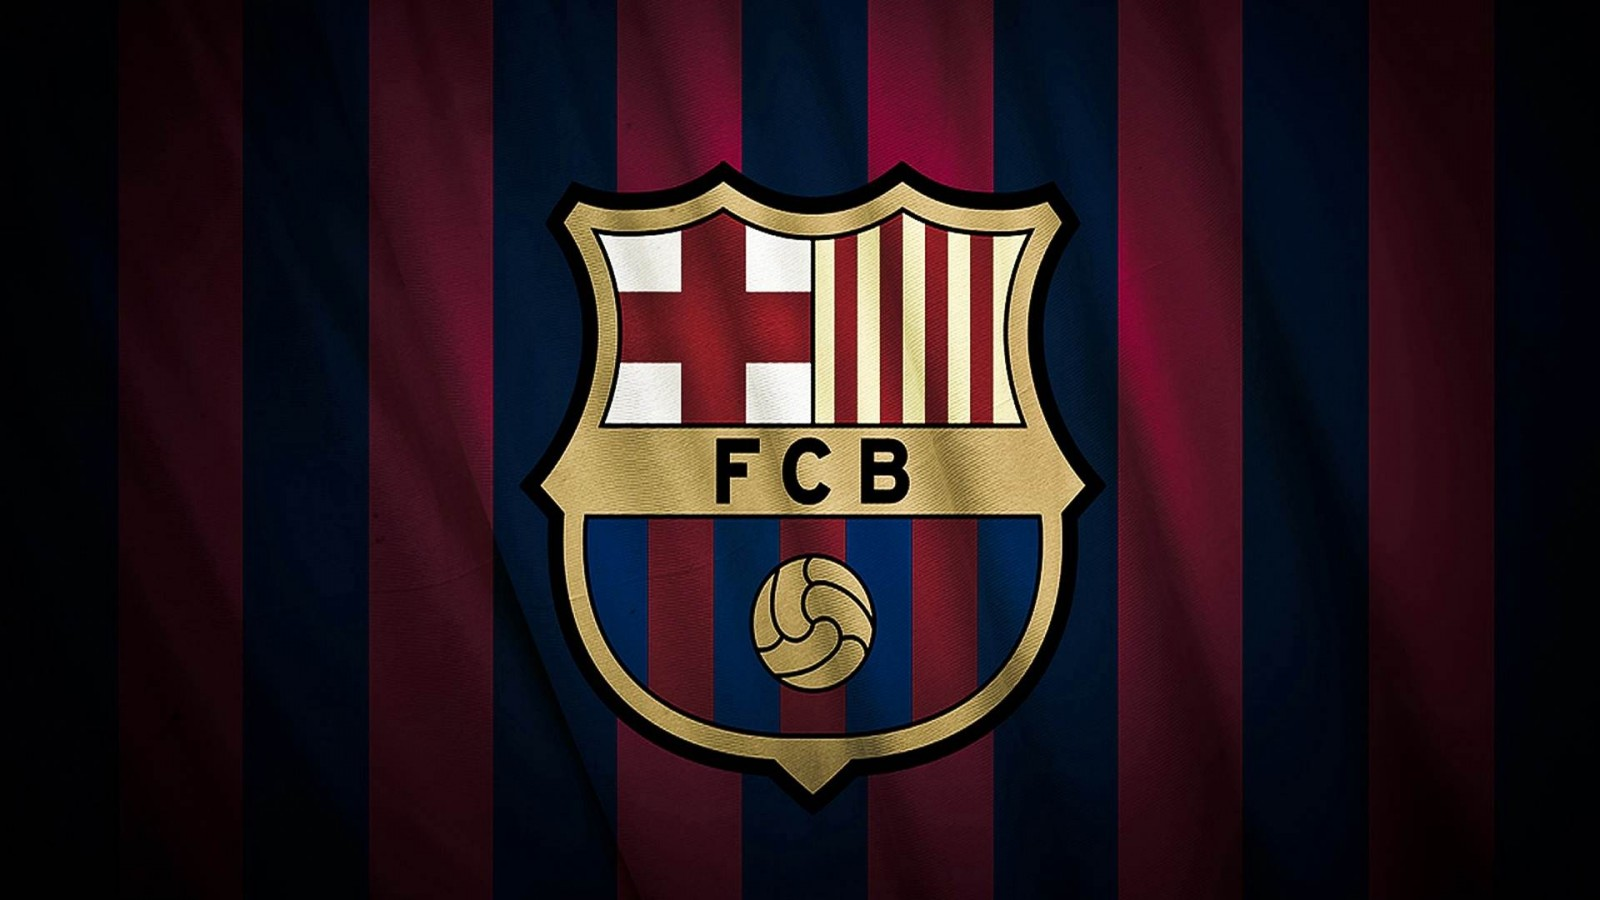 Fc Barcelona Logo Football Hd Soccer Wallpaper Full HD Wallpapers 1600x900